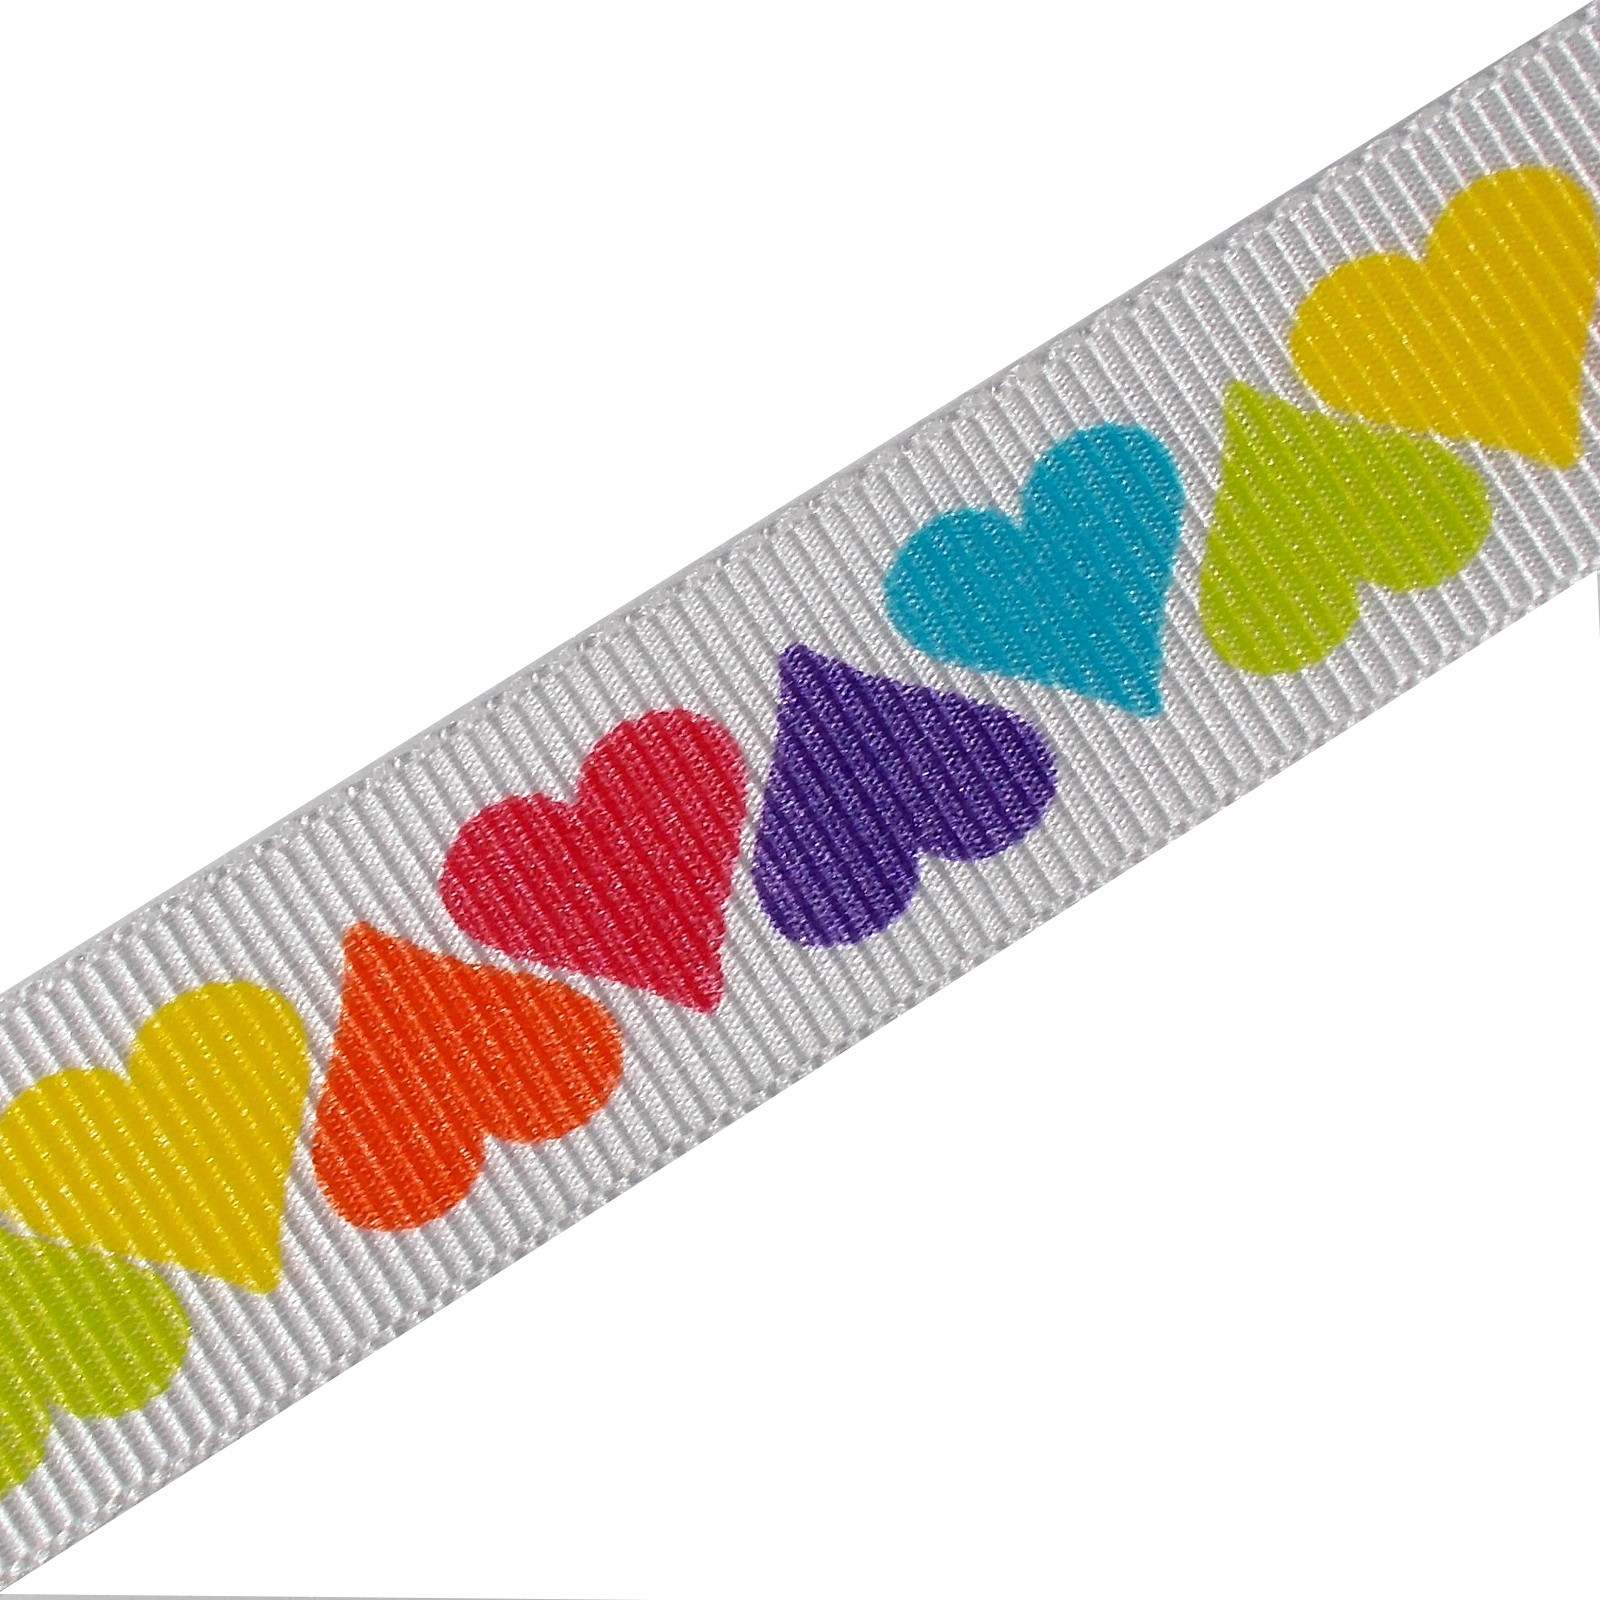 Berisfords Bright Rainbow Grosgrain Ribbon 25mm wide Hearts 1 metre length